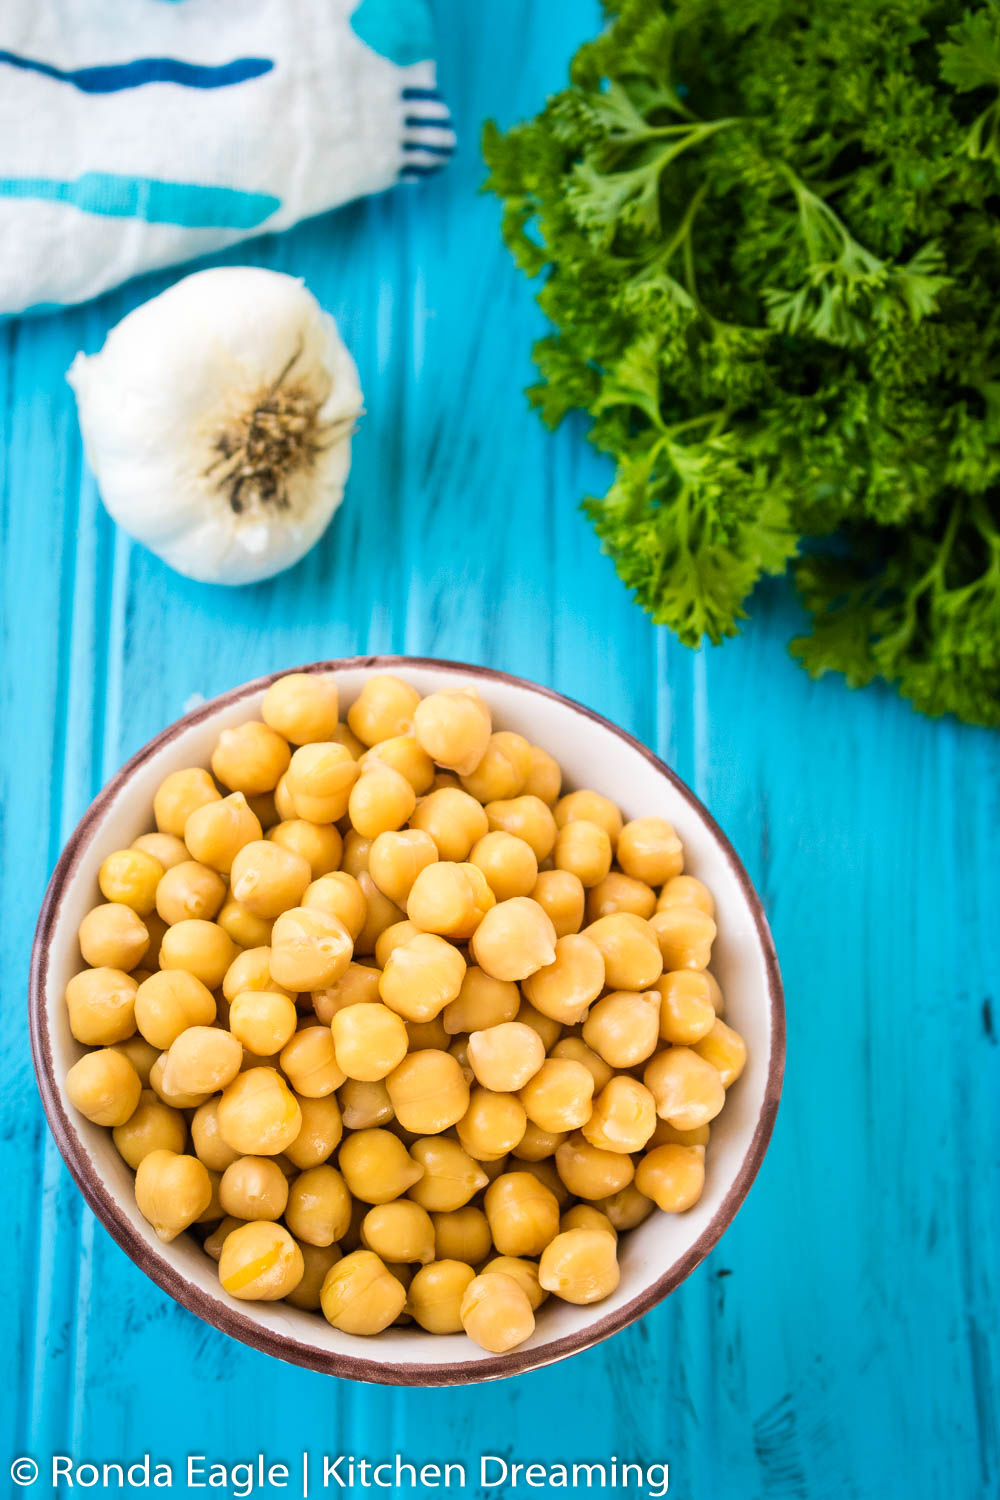 An image of a small, white, ceramic bowl of chick peas on a blue background. Curly Parsley and a head of garlic rest in the background with a blue and white utensil patterned kitchen towel.